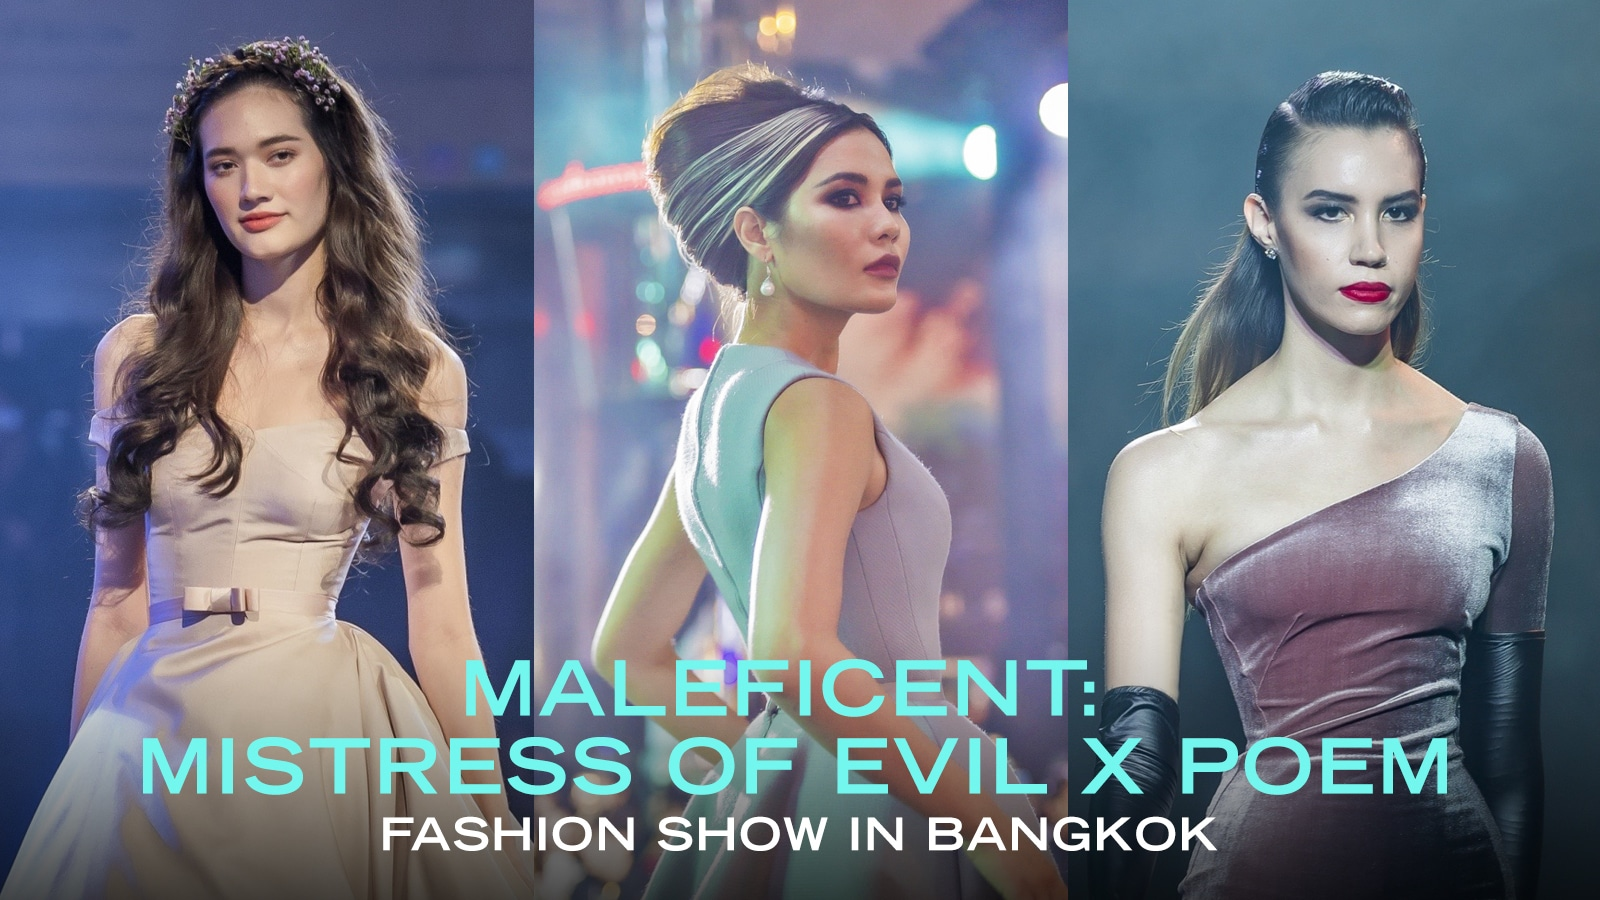 WATCH HIGHLIGHTS FROM THE DISNEY'S MALEFICENT: MISTRESS OF EVIL X POEM FASHION SHOW IN BANGKOK